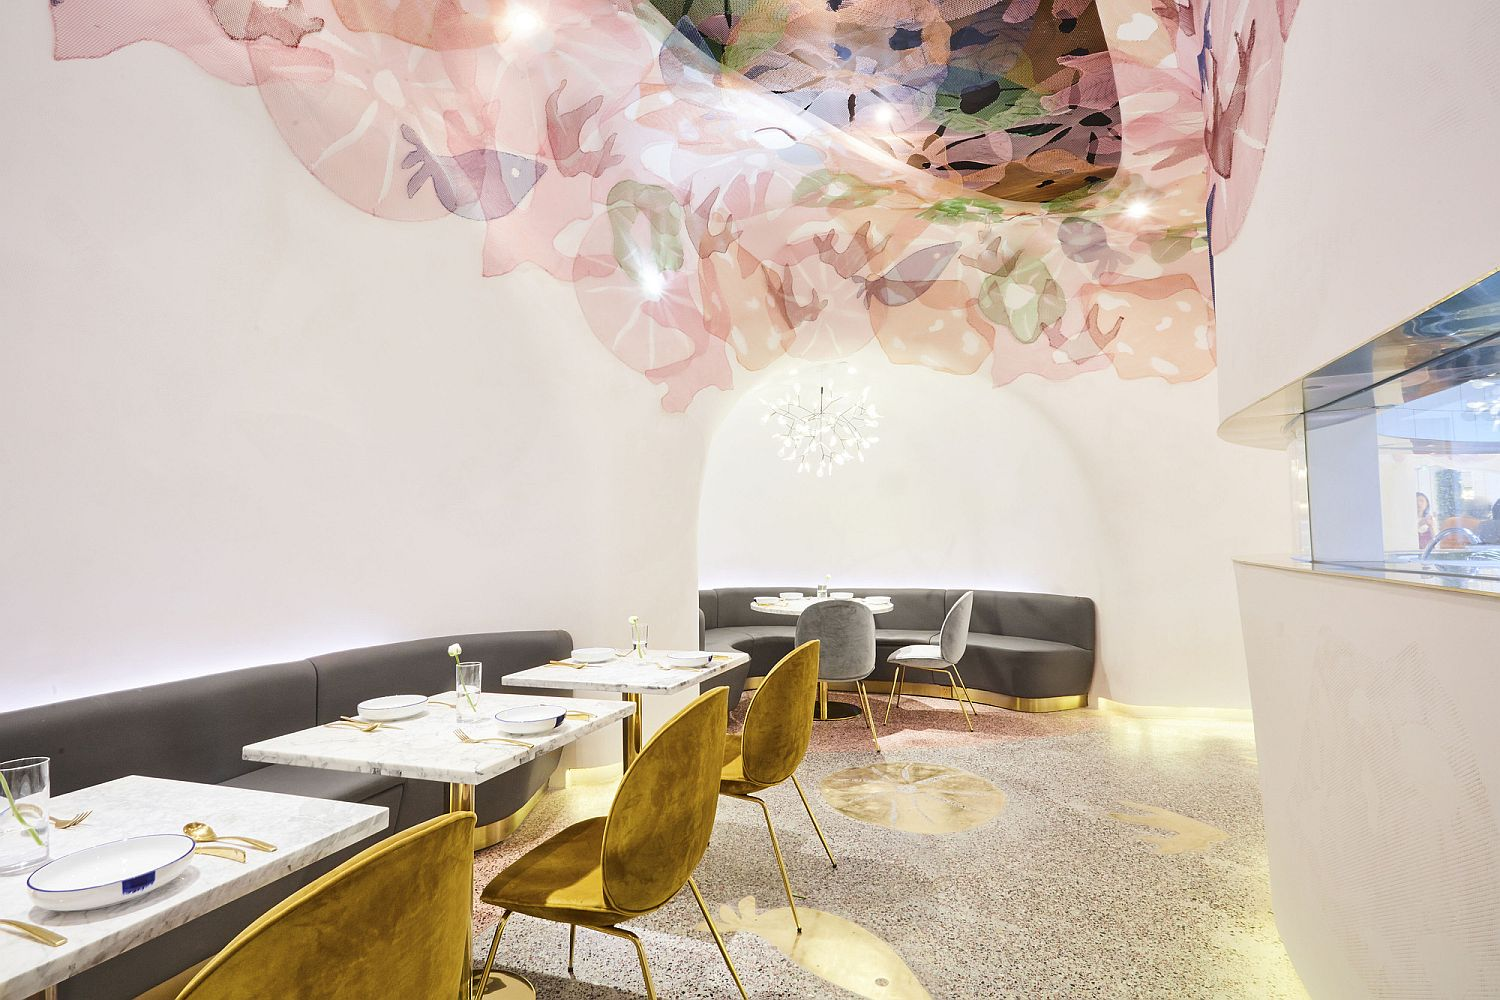 Touch of gold brings brightness to the ocean themed restaurant